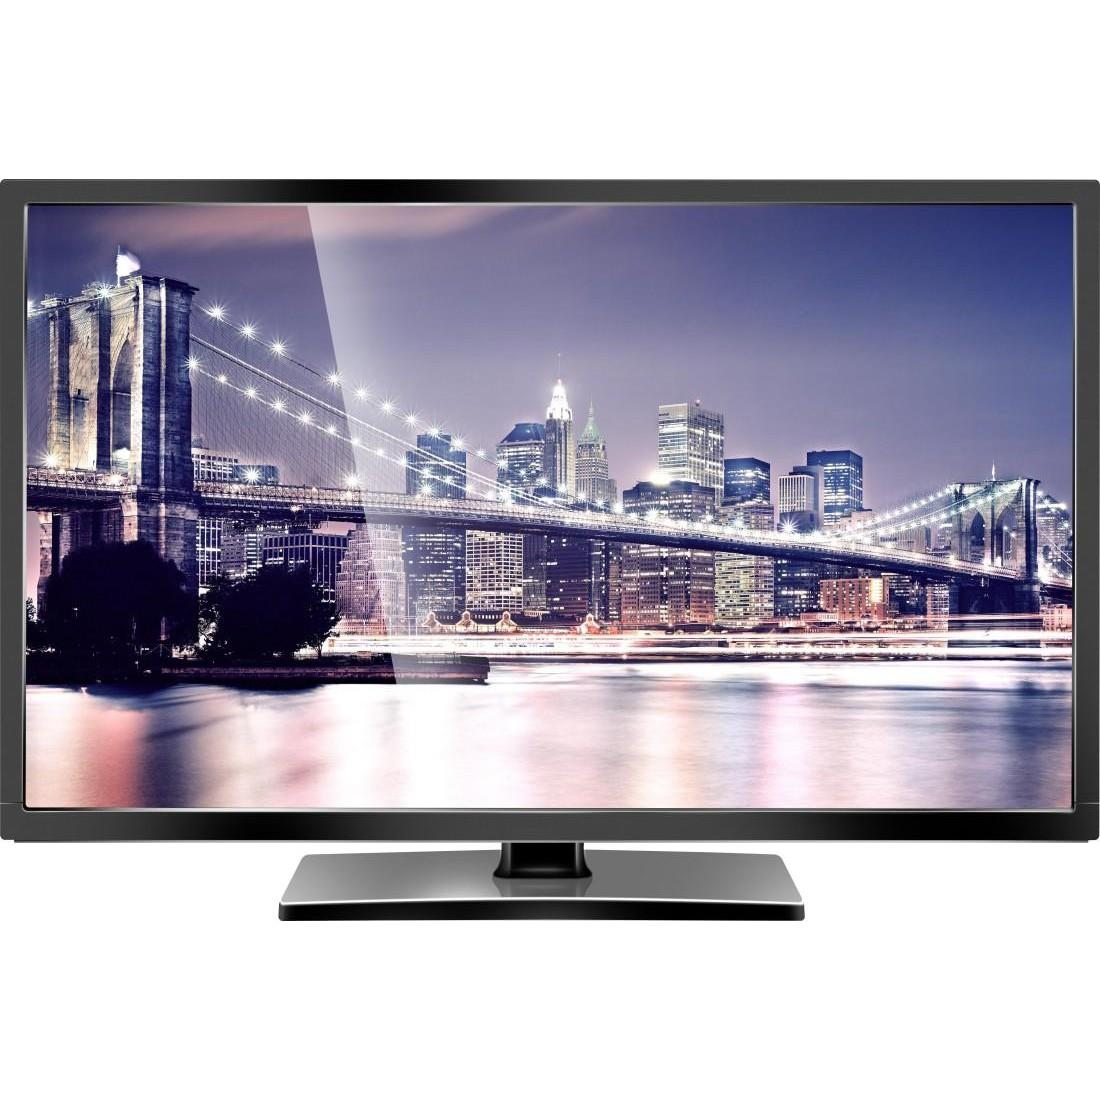 NOBLE 21CV195ODN01 49.5 cm (19.5) LED TV (HD Ready) Image